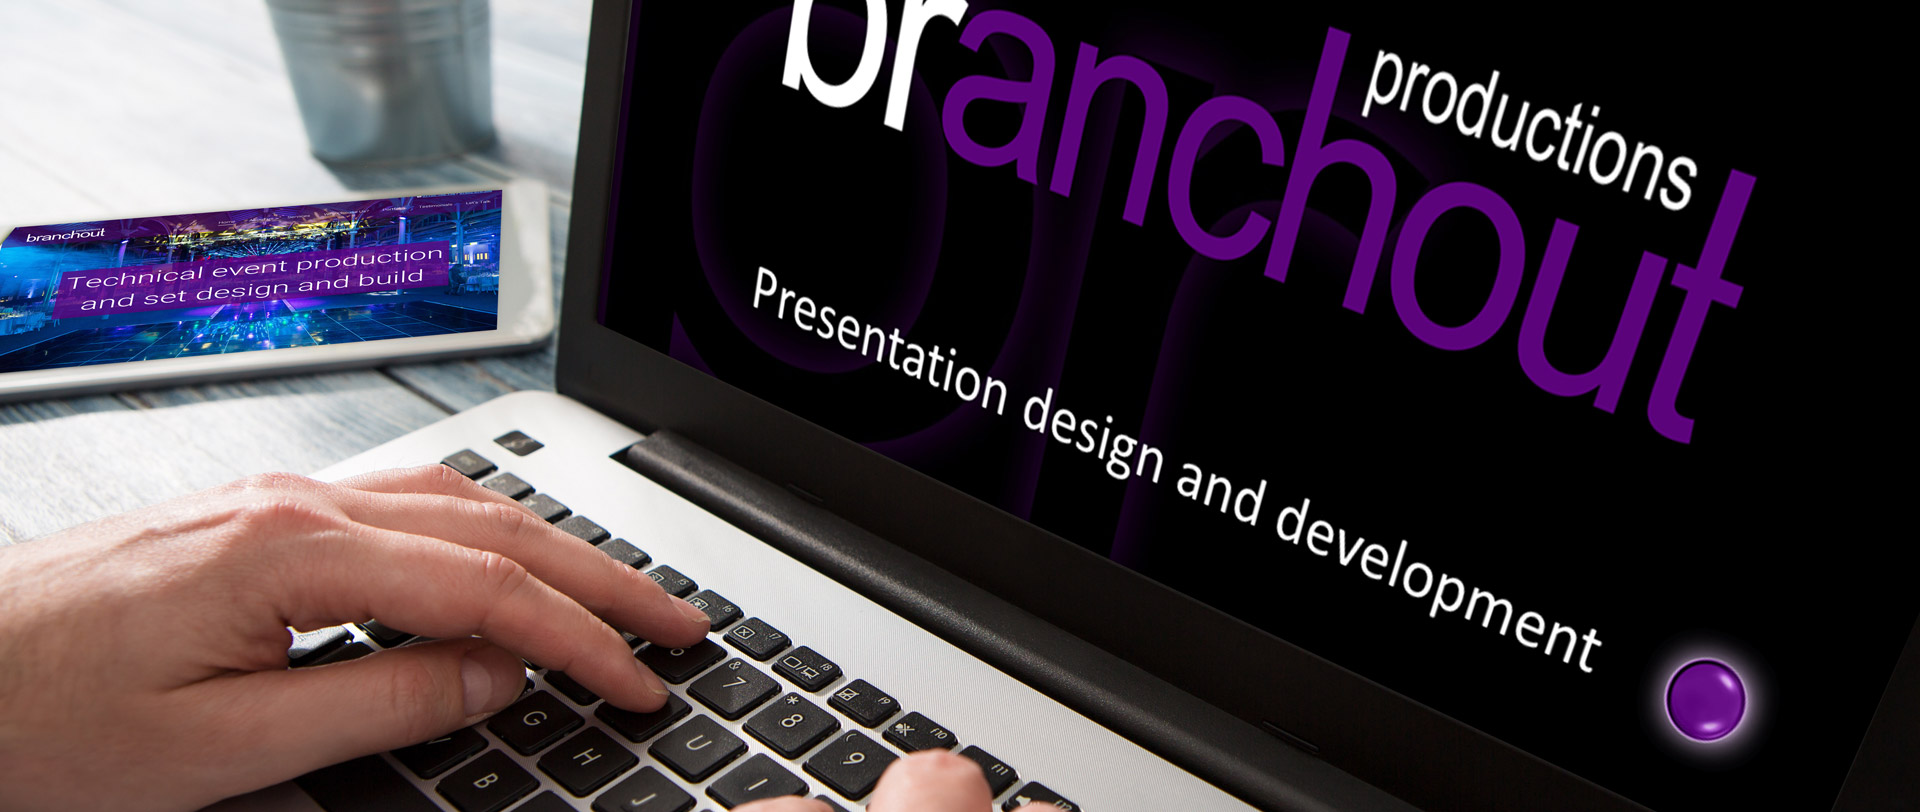 Presentation design and development